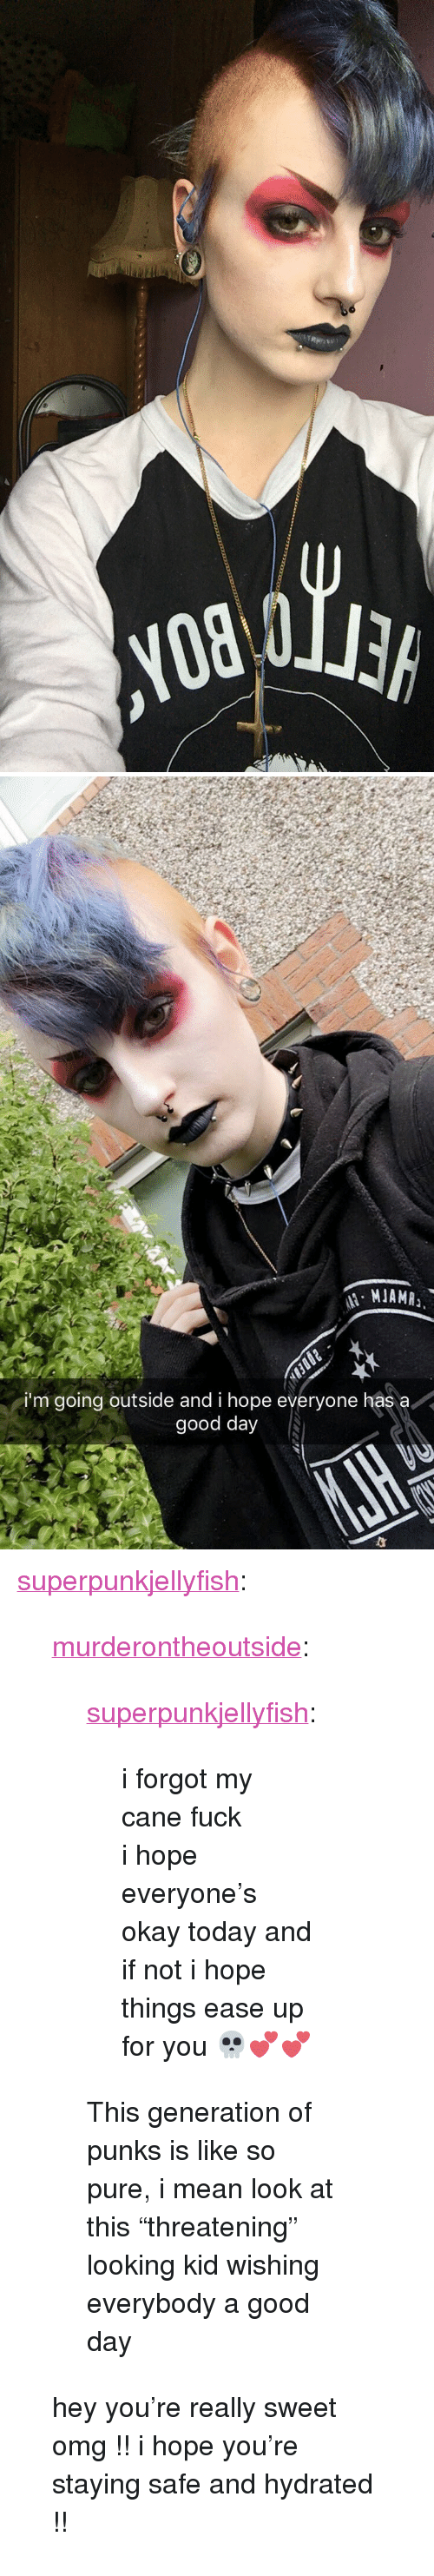 """Omg, Tumblr, and Blog: i'm going outside and i hope everyone has a  good day <p><a href=""""http://superpunkjellyfish.tumblr.com/post/171805056905/murderontheoutside-superpunkjellyfish-i"""" class=""""tumblr_blog"""">superpunkjellyfish</a>:</p>  <blockquote><p><a href=""""https://murderontheoutside.tumblr.com/post/171804858856/superpunkjellyfish-i-forgot-my-cane-fuck-i"""" class=""""tumblr_blog"""">murderontheoutside</a>:</p>  <blockquote><p><a href=""""http://superpunkjellyfish.tumblr.com/post/164828007080/i-forgot-my-cane-fuck-i-hope-everyones-okay"""" class=""""tumblr_blog"""">superpunkjellyfish</a>:</p>  <blockquote><p>i forgot my cane fuck<br/> i hope everyone's okay today and if not i hope things ease up for you 💀💕💕</p></blockquote>  <p>This generation of punks is like so pure, i mean look at this """"threatening"""" looking kid wishing everybody a good day</p></blockquote>  <p>hey you're really sweet omg !! i hope you're staying safe and hydrated !! </p></blockquote>"""